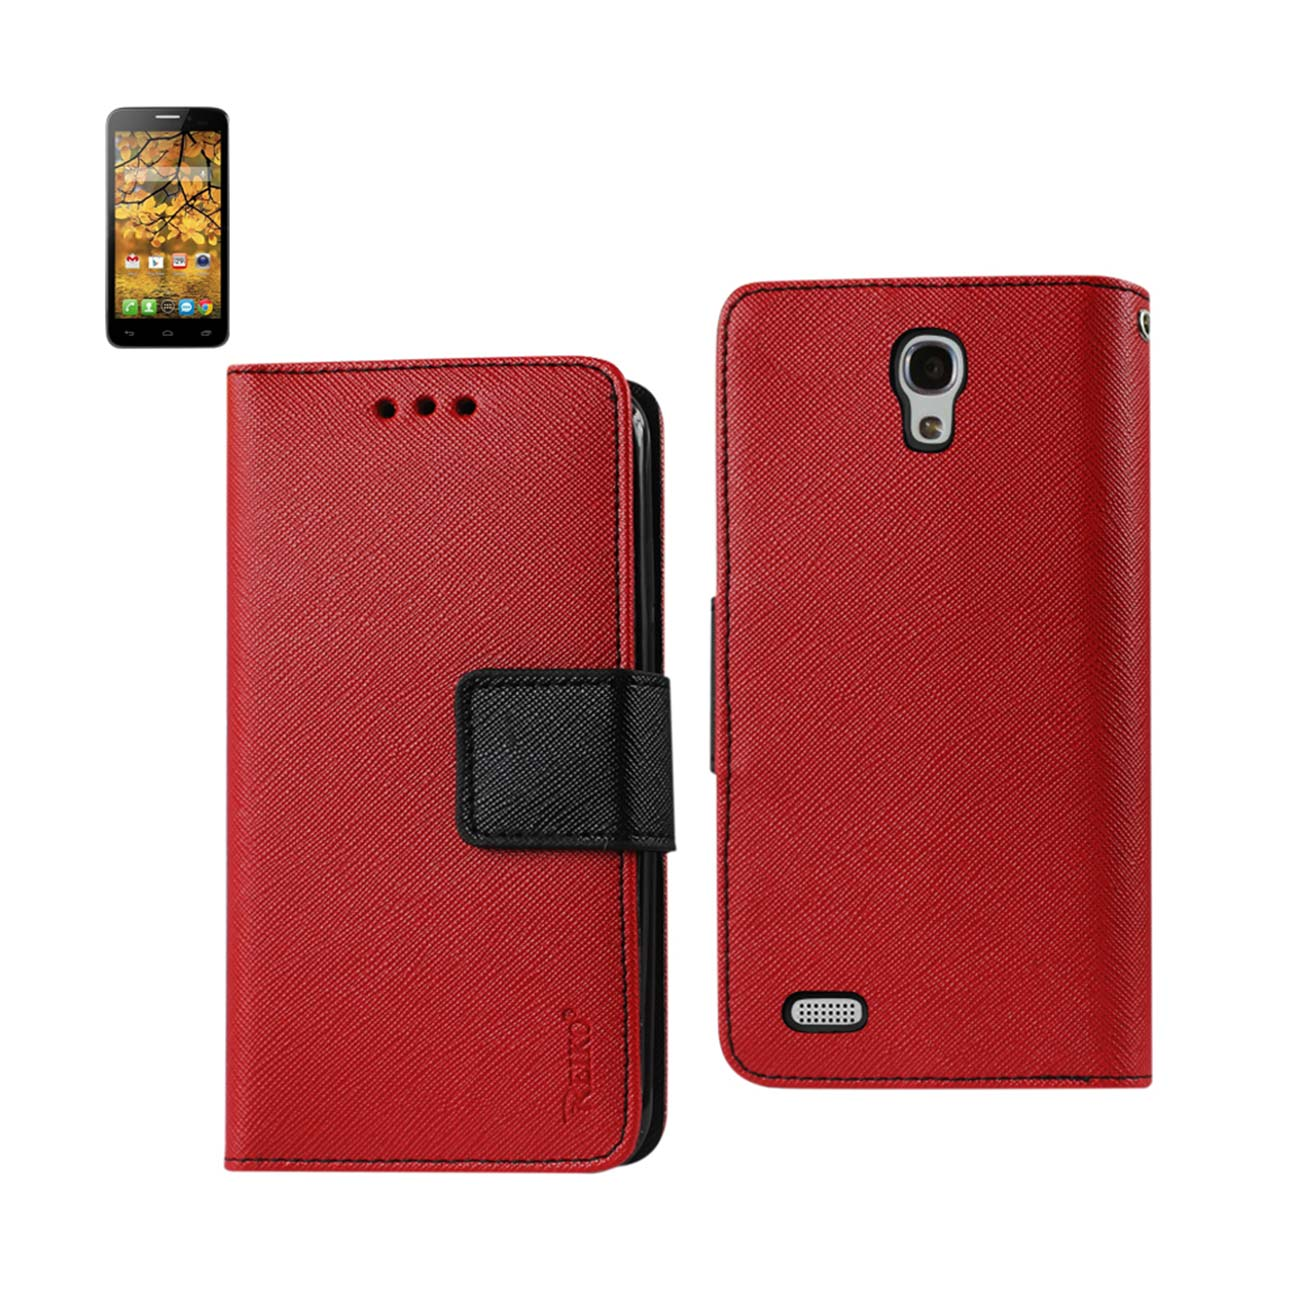 REIKO ALCATEL ONE TOUCH CONQUEST 3-IN-1 WALLET CASE IN RED